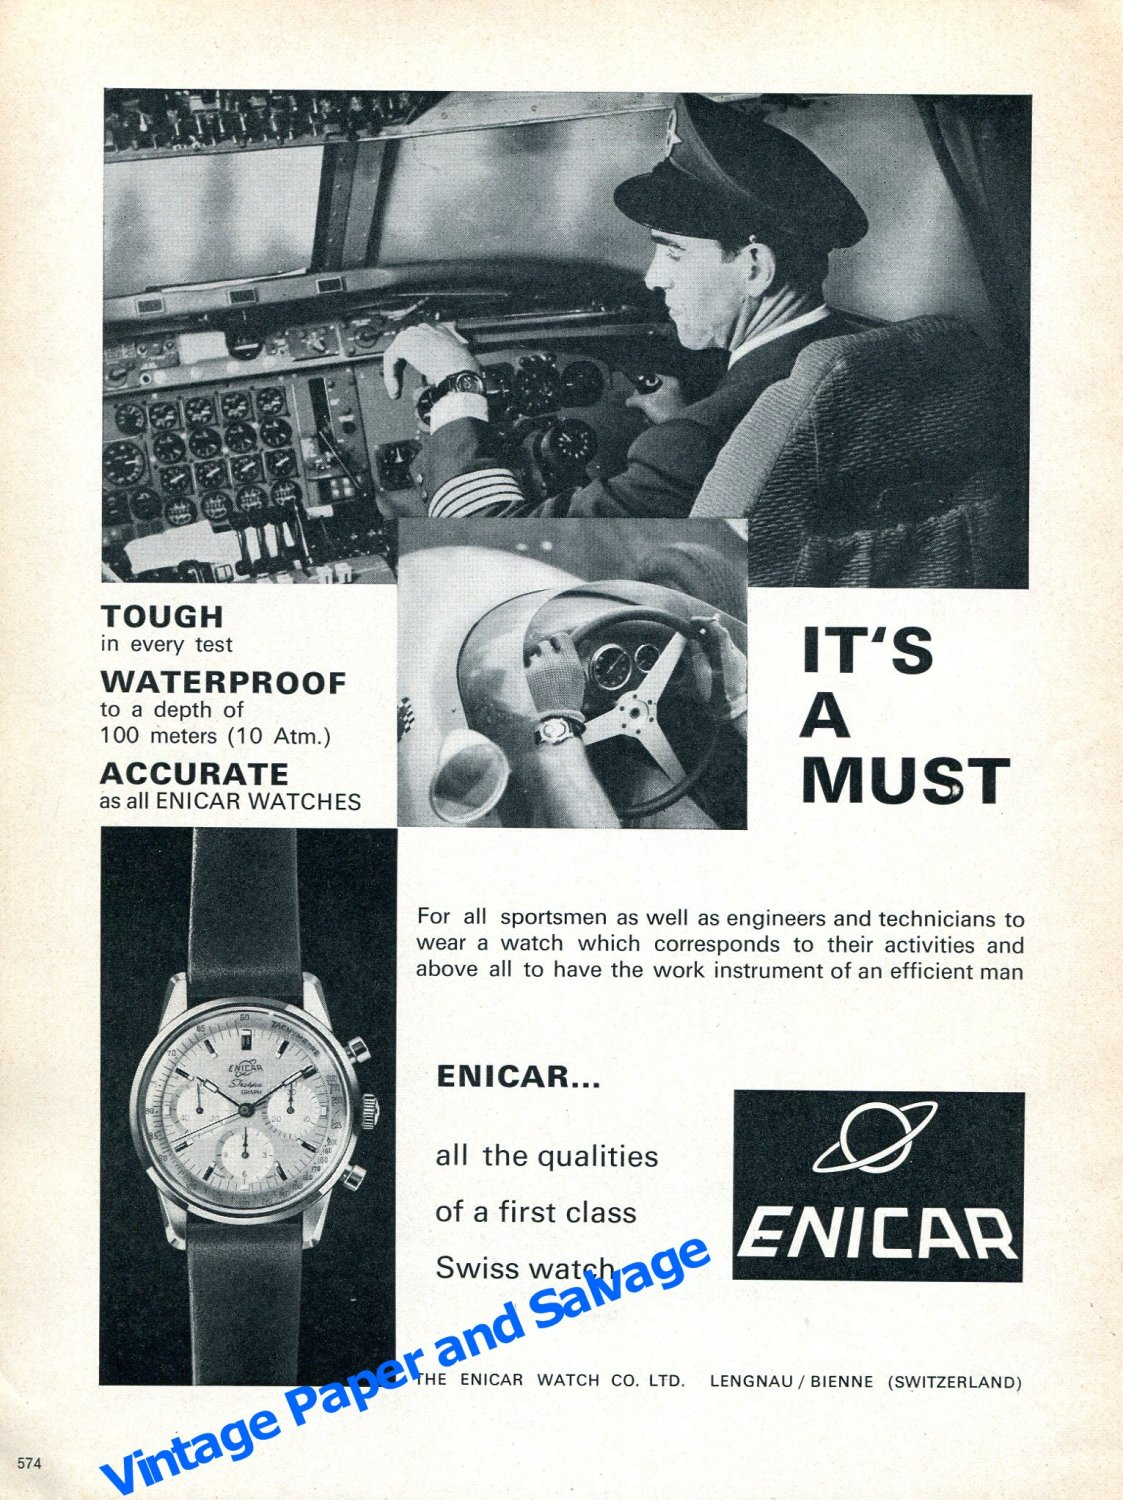 1964 Enicar Watch Advert Tough Waterproof Accurate Swiss Print Ad Publicite Suisse